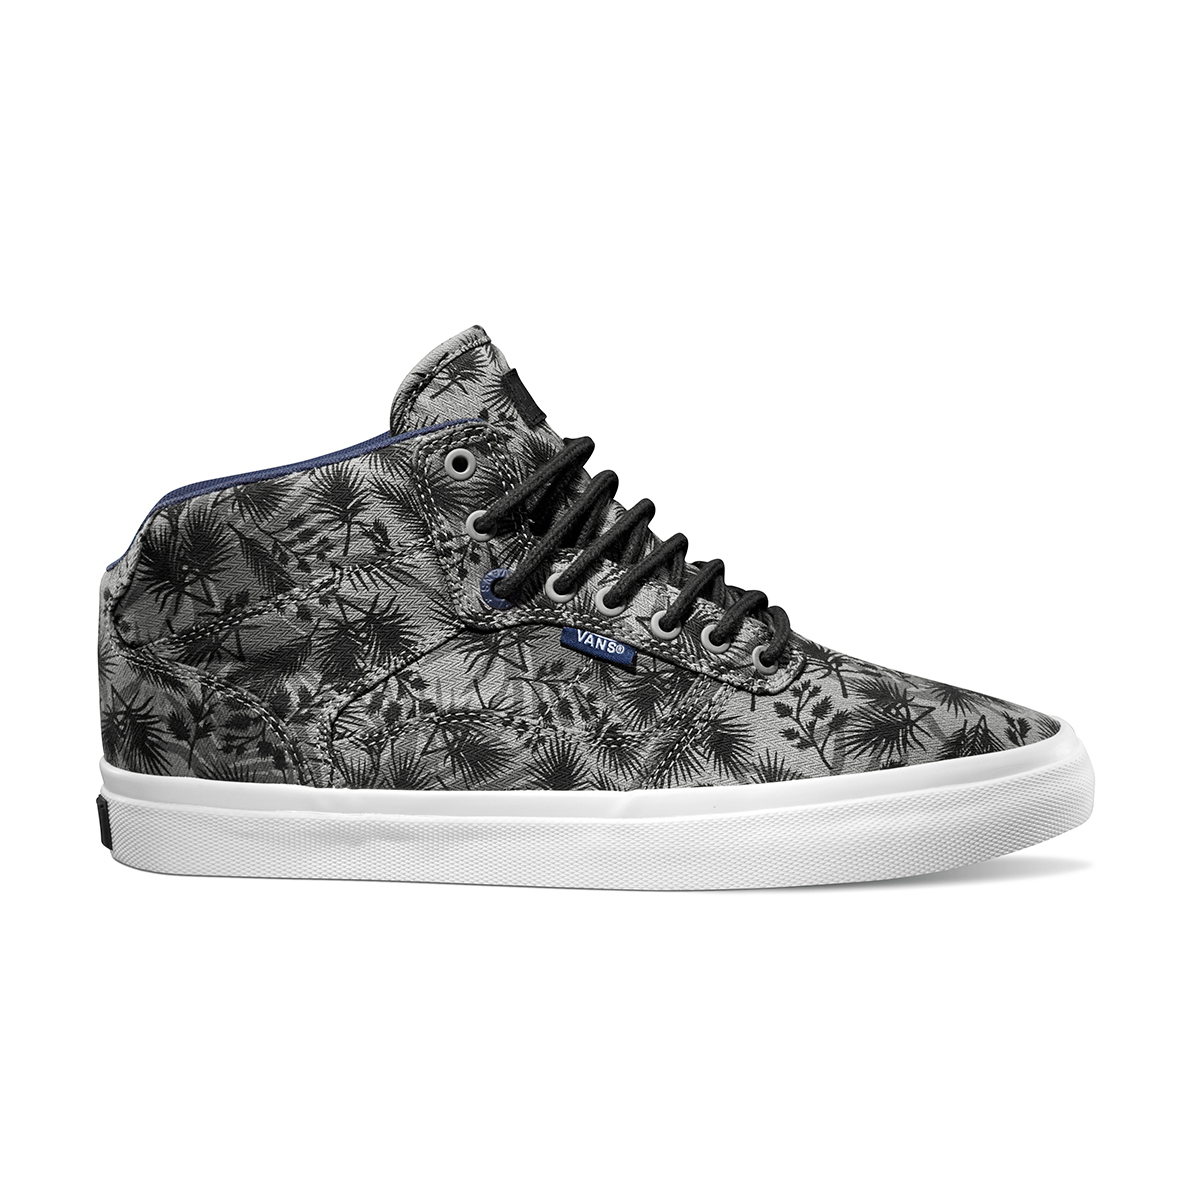 4a415bc67b Vans OTW Collection Palm Camo Pack for Spring 2014